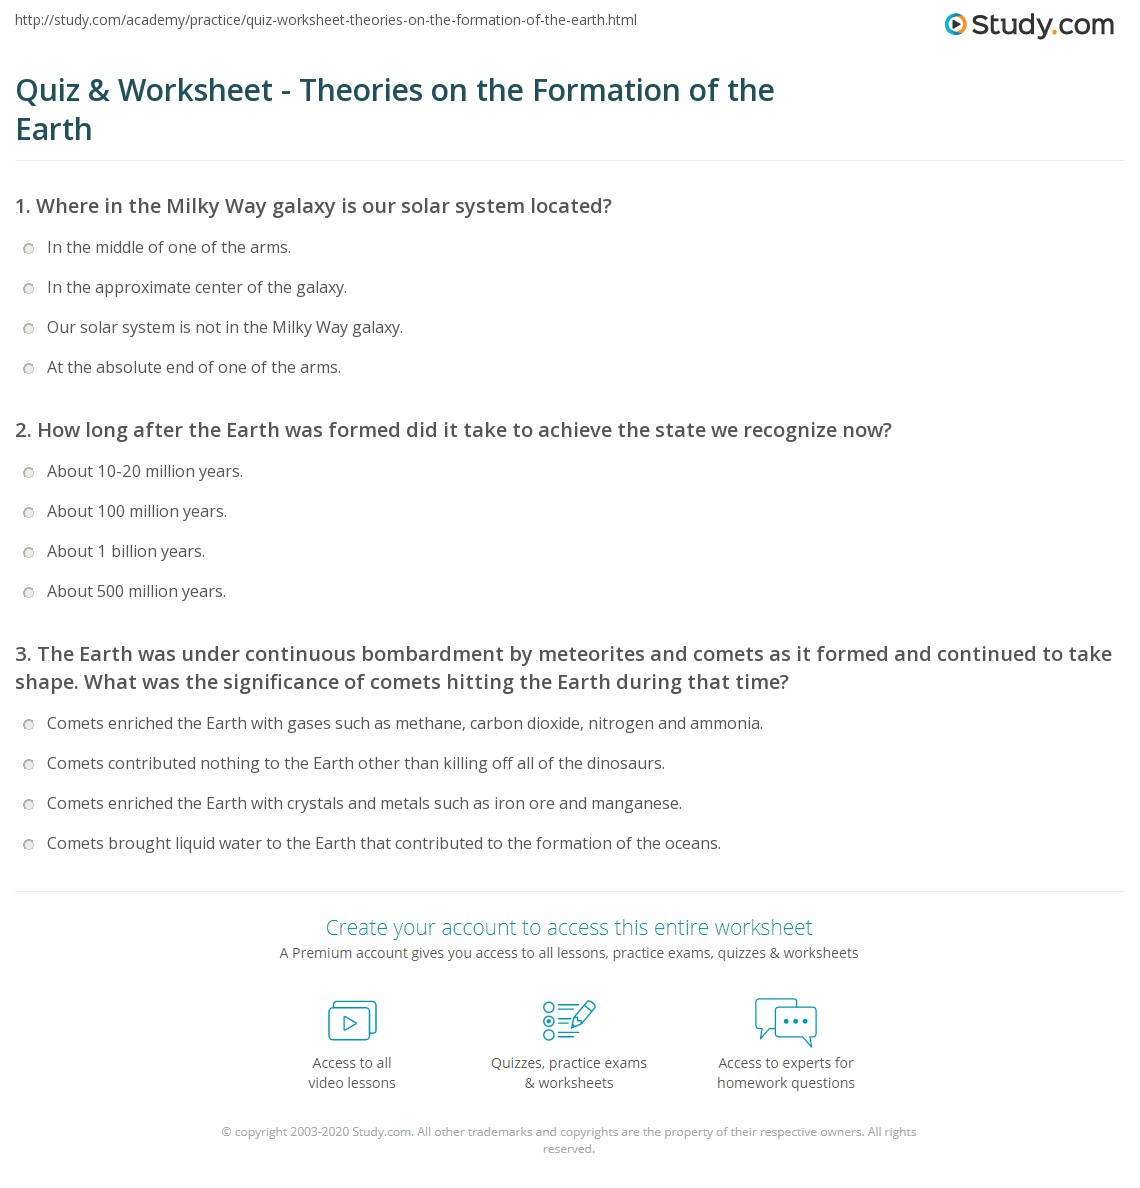 Quiz & Worksheet - Theories on the Formation of the Earth | Study.com